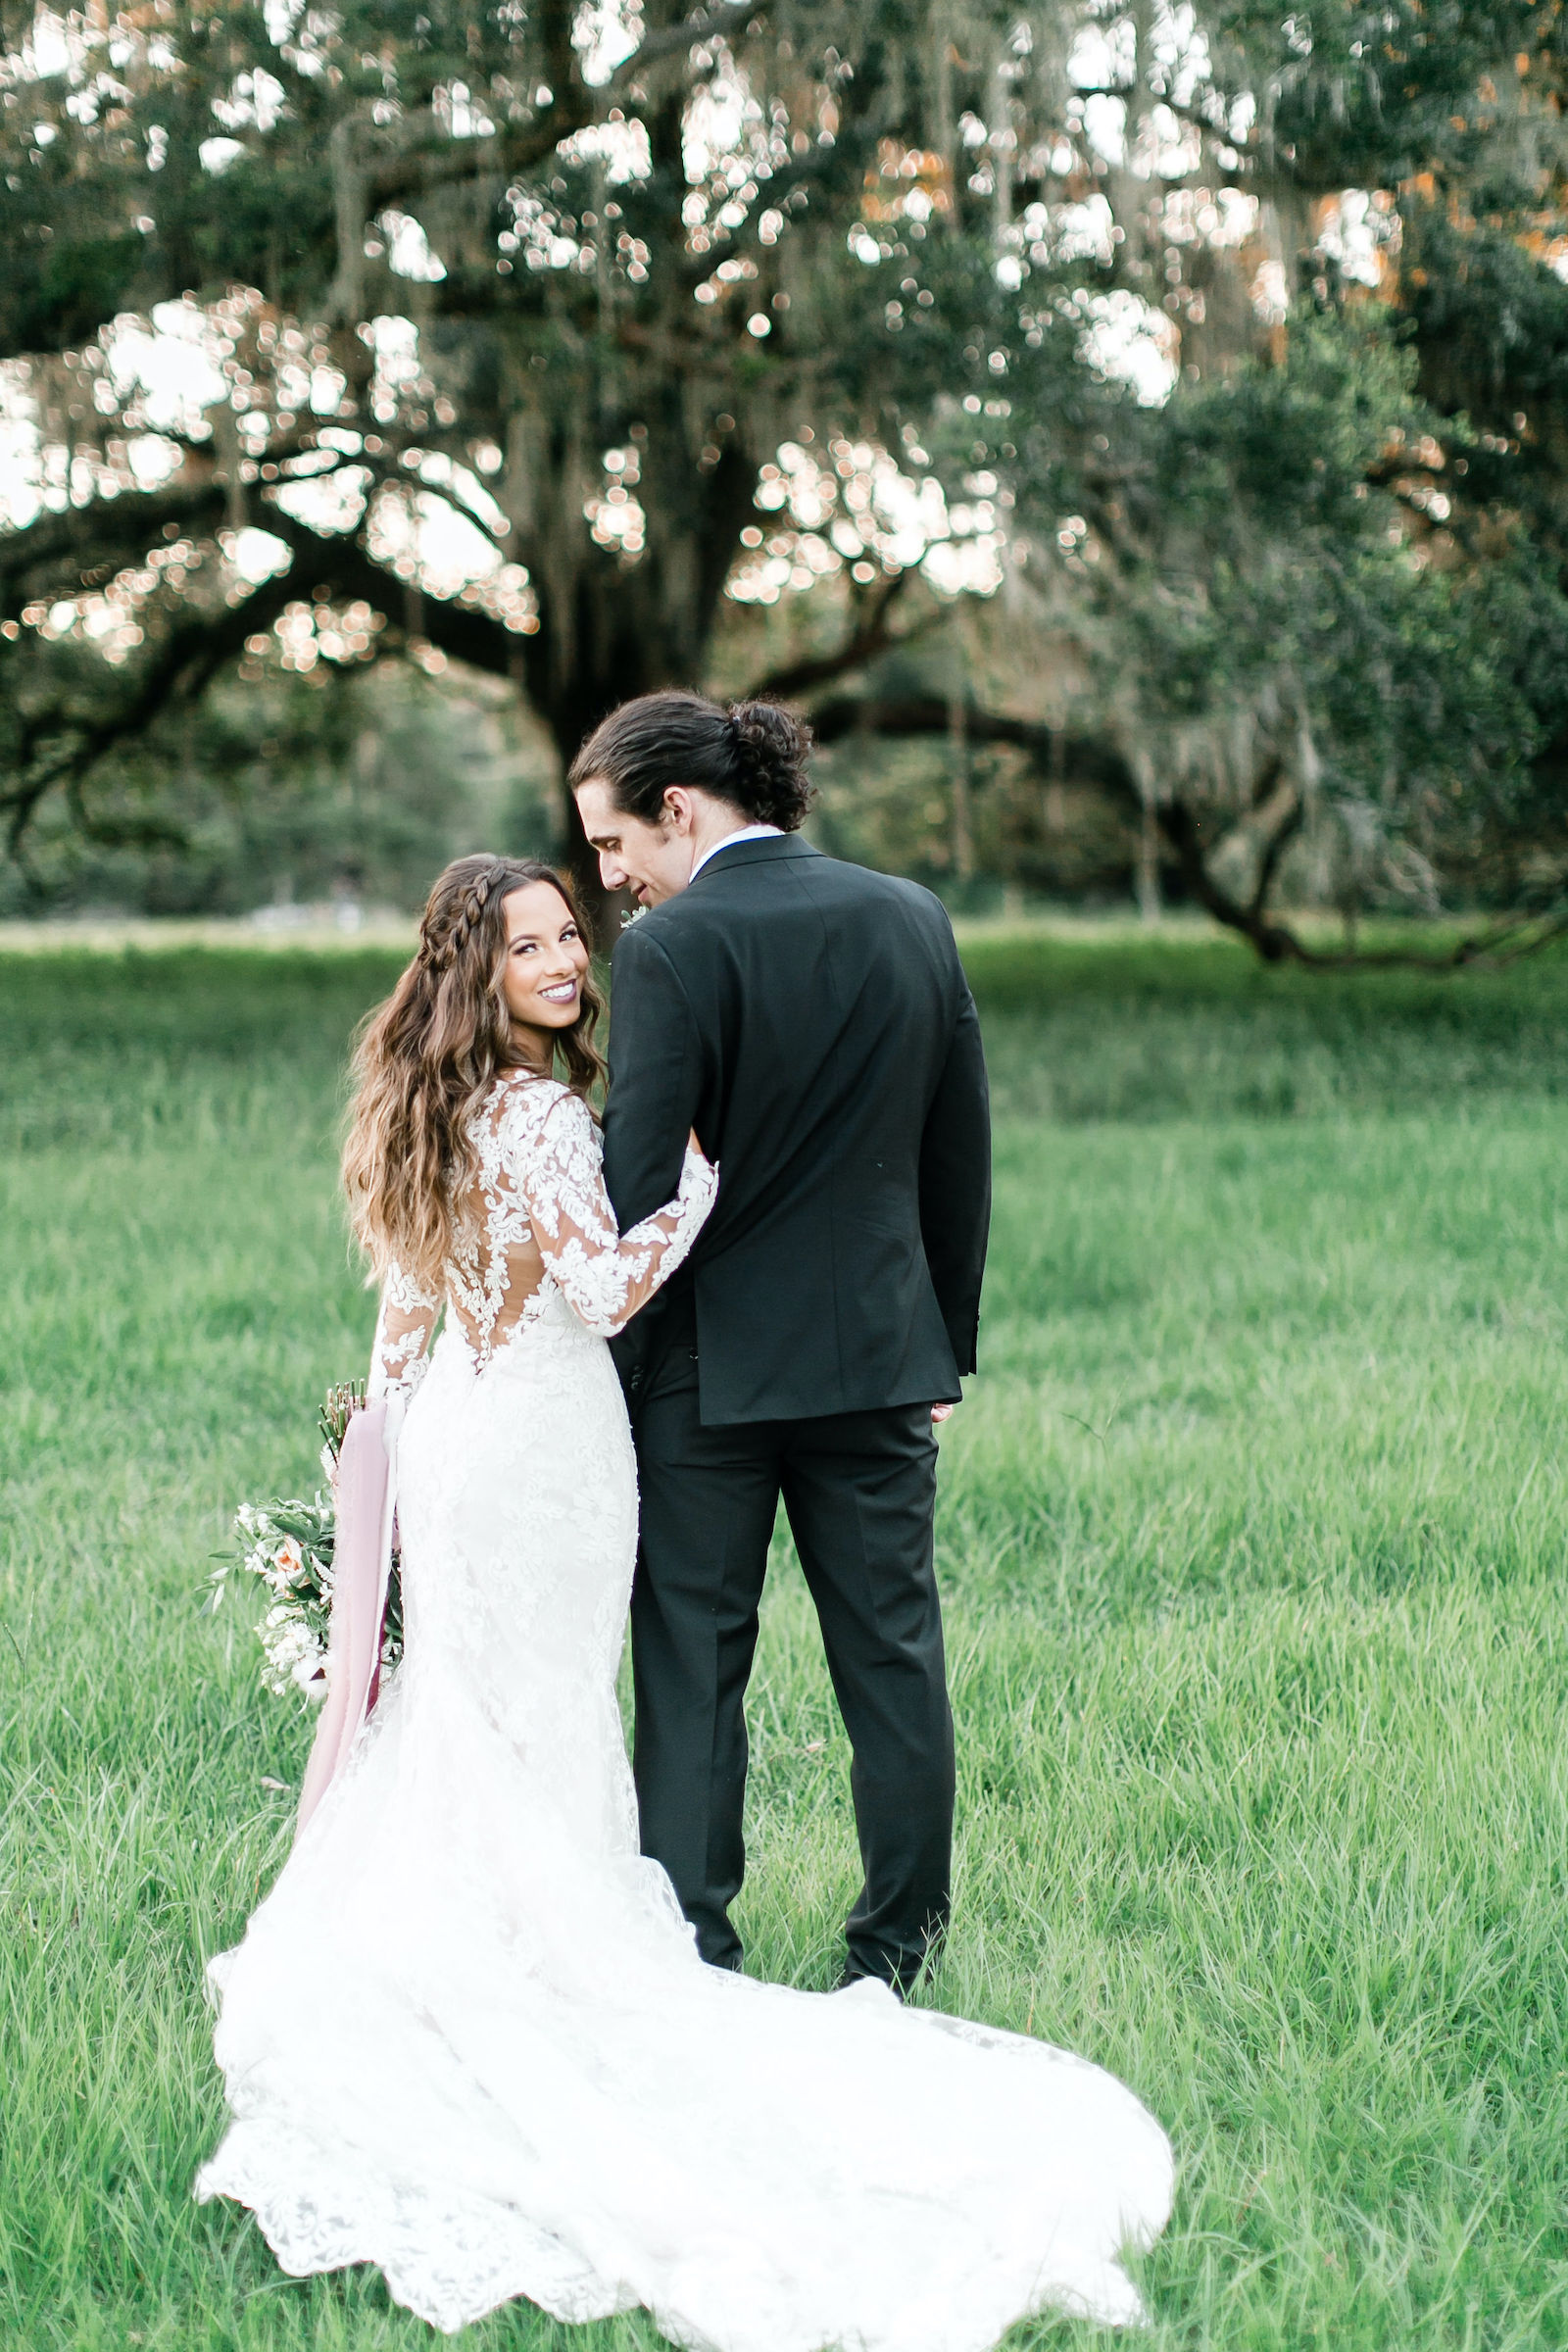 Lace Mermaid Long Sleeve Low Back Illusion Lace Bridal Gown Wedding Dress | Groom in Classic Black Suit Tux